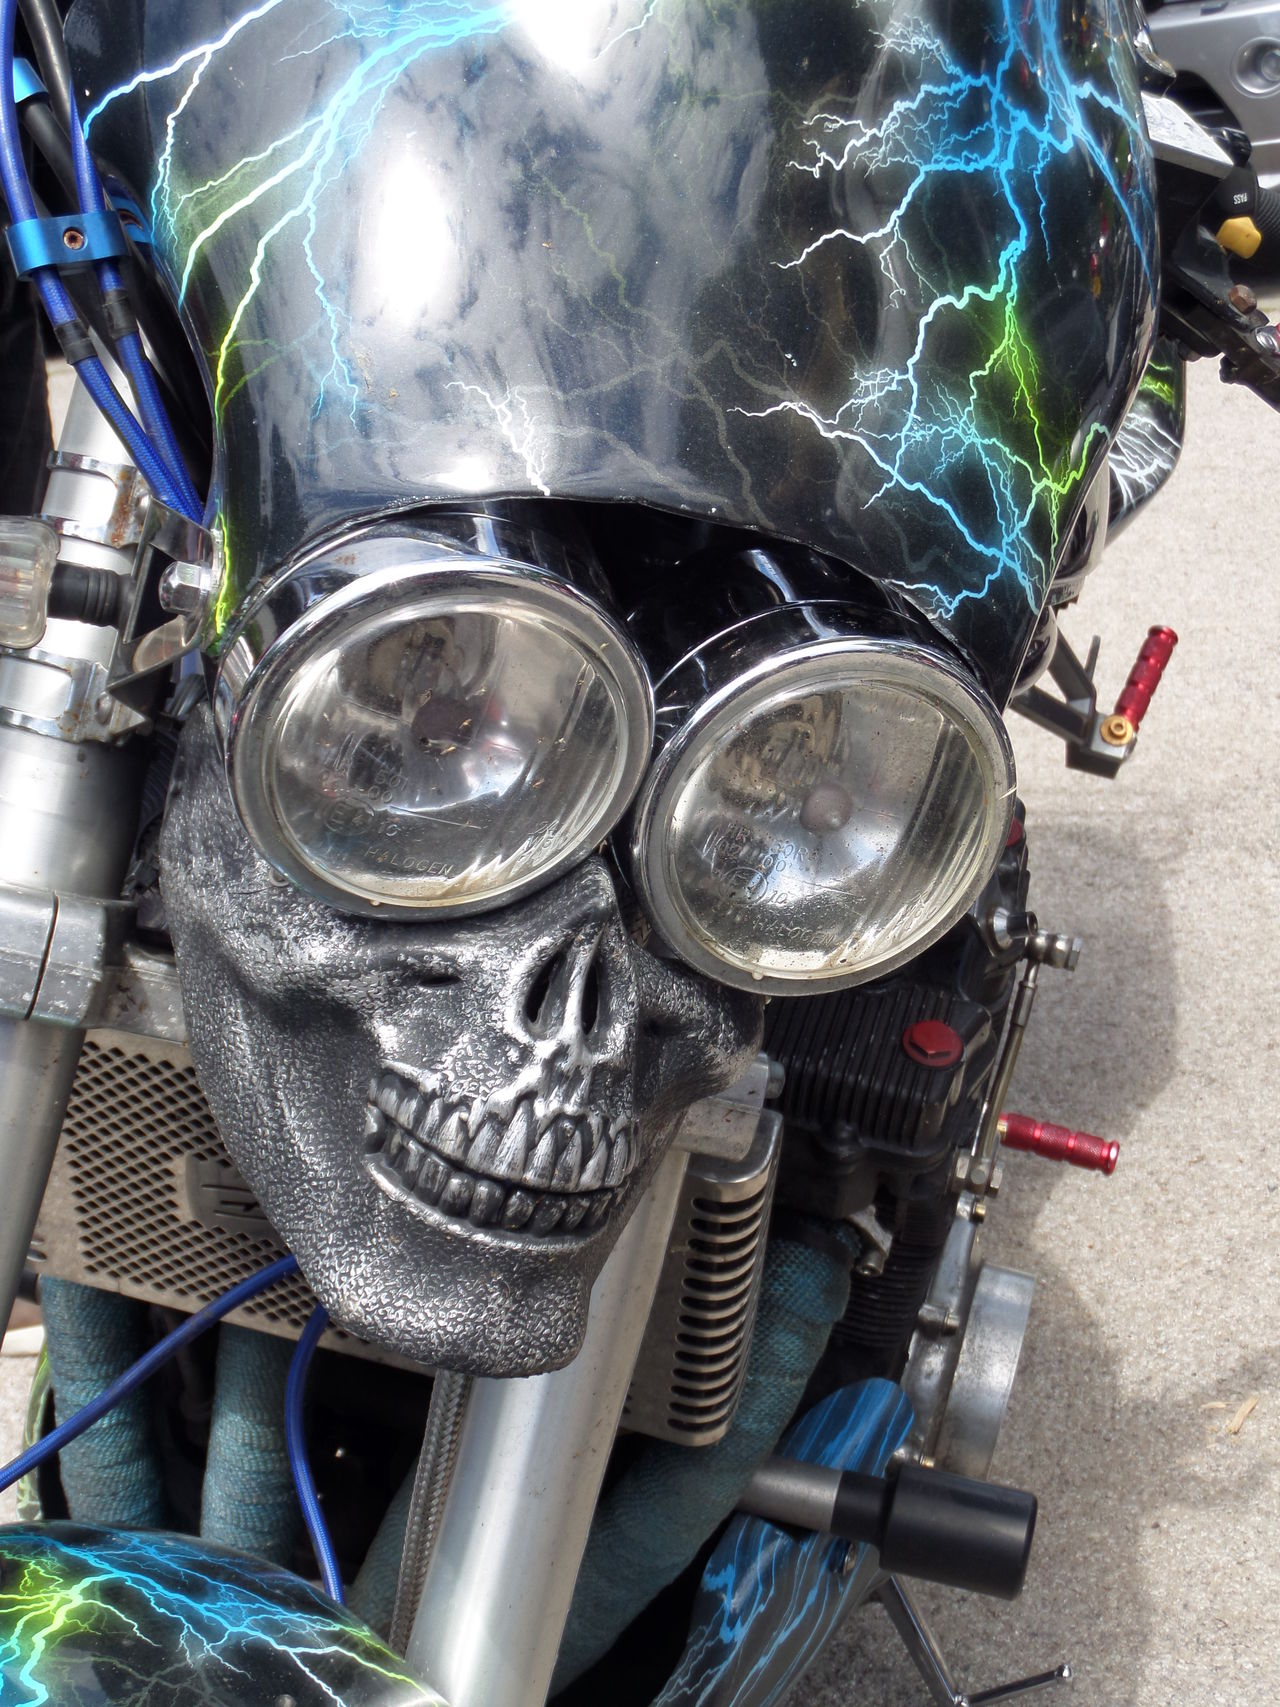 Close-up Day Fun. Headlights. Pink. Green. Shiny. Metallic. Chrome Bumper. American Style. Vintage 1950. Lights Machine Part Man Made Object Motorcycle. Enjoying Life :) Mptorcycle Headlights. No People Shiny Silver  Silver Colour. Skull Skull Motorcycle Headlights. Stationary Still Life